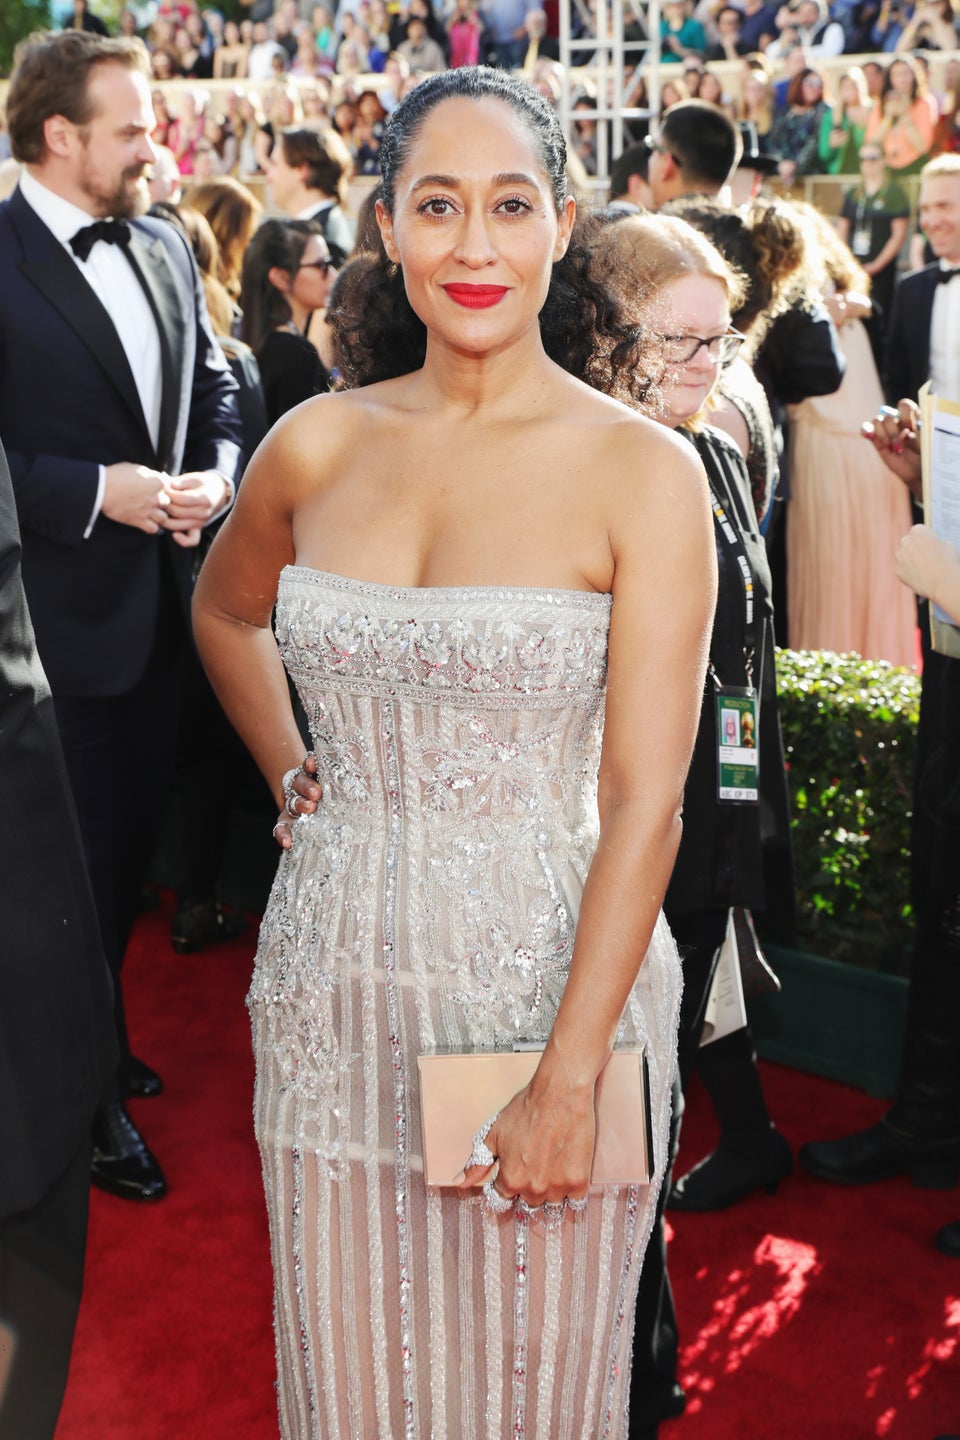 Tracee Ellis Ross Shines In A Silver Gown And Fists Full Of Diamonds At The Golden Globes